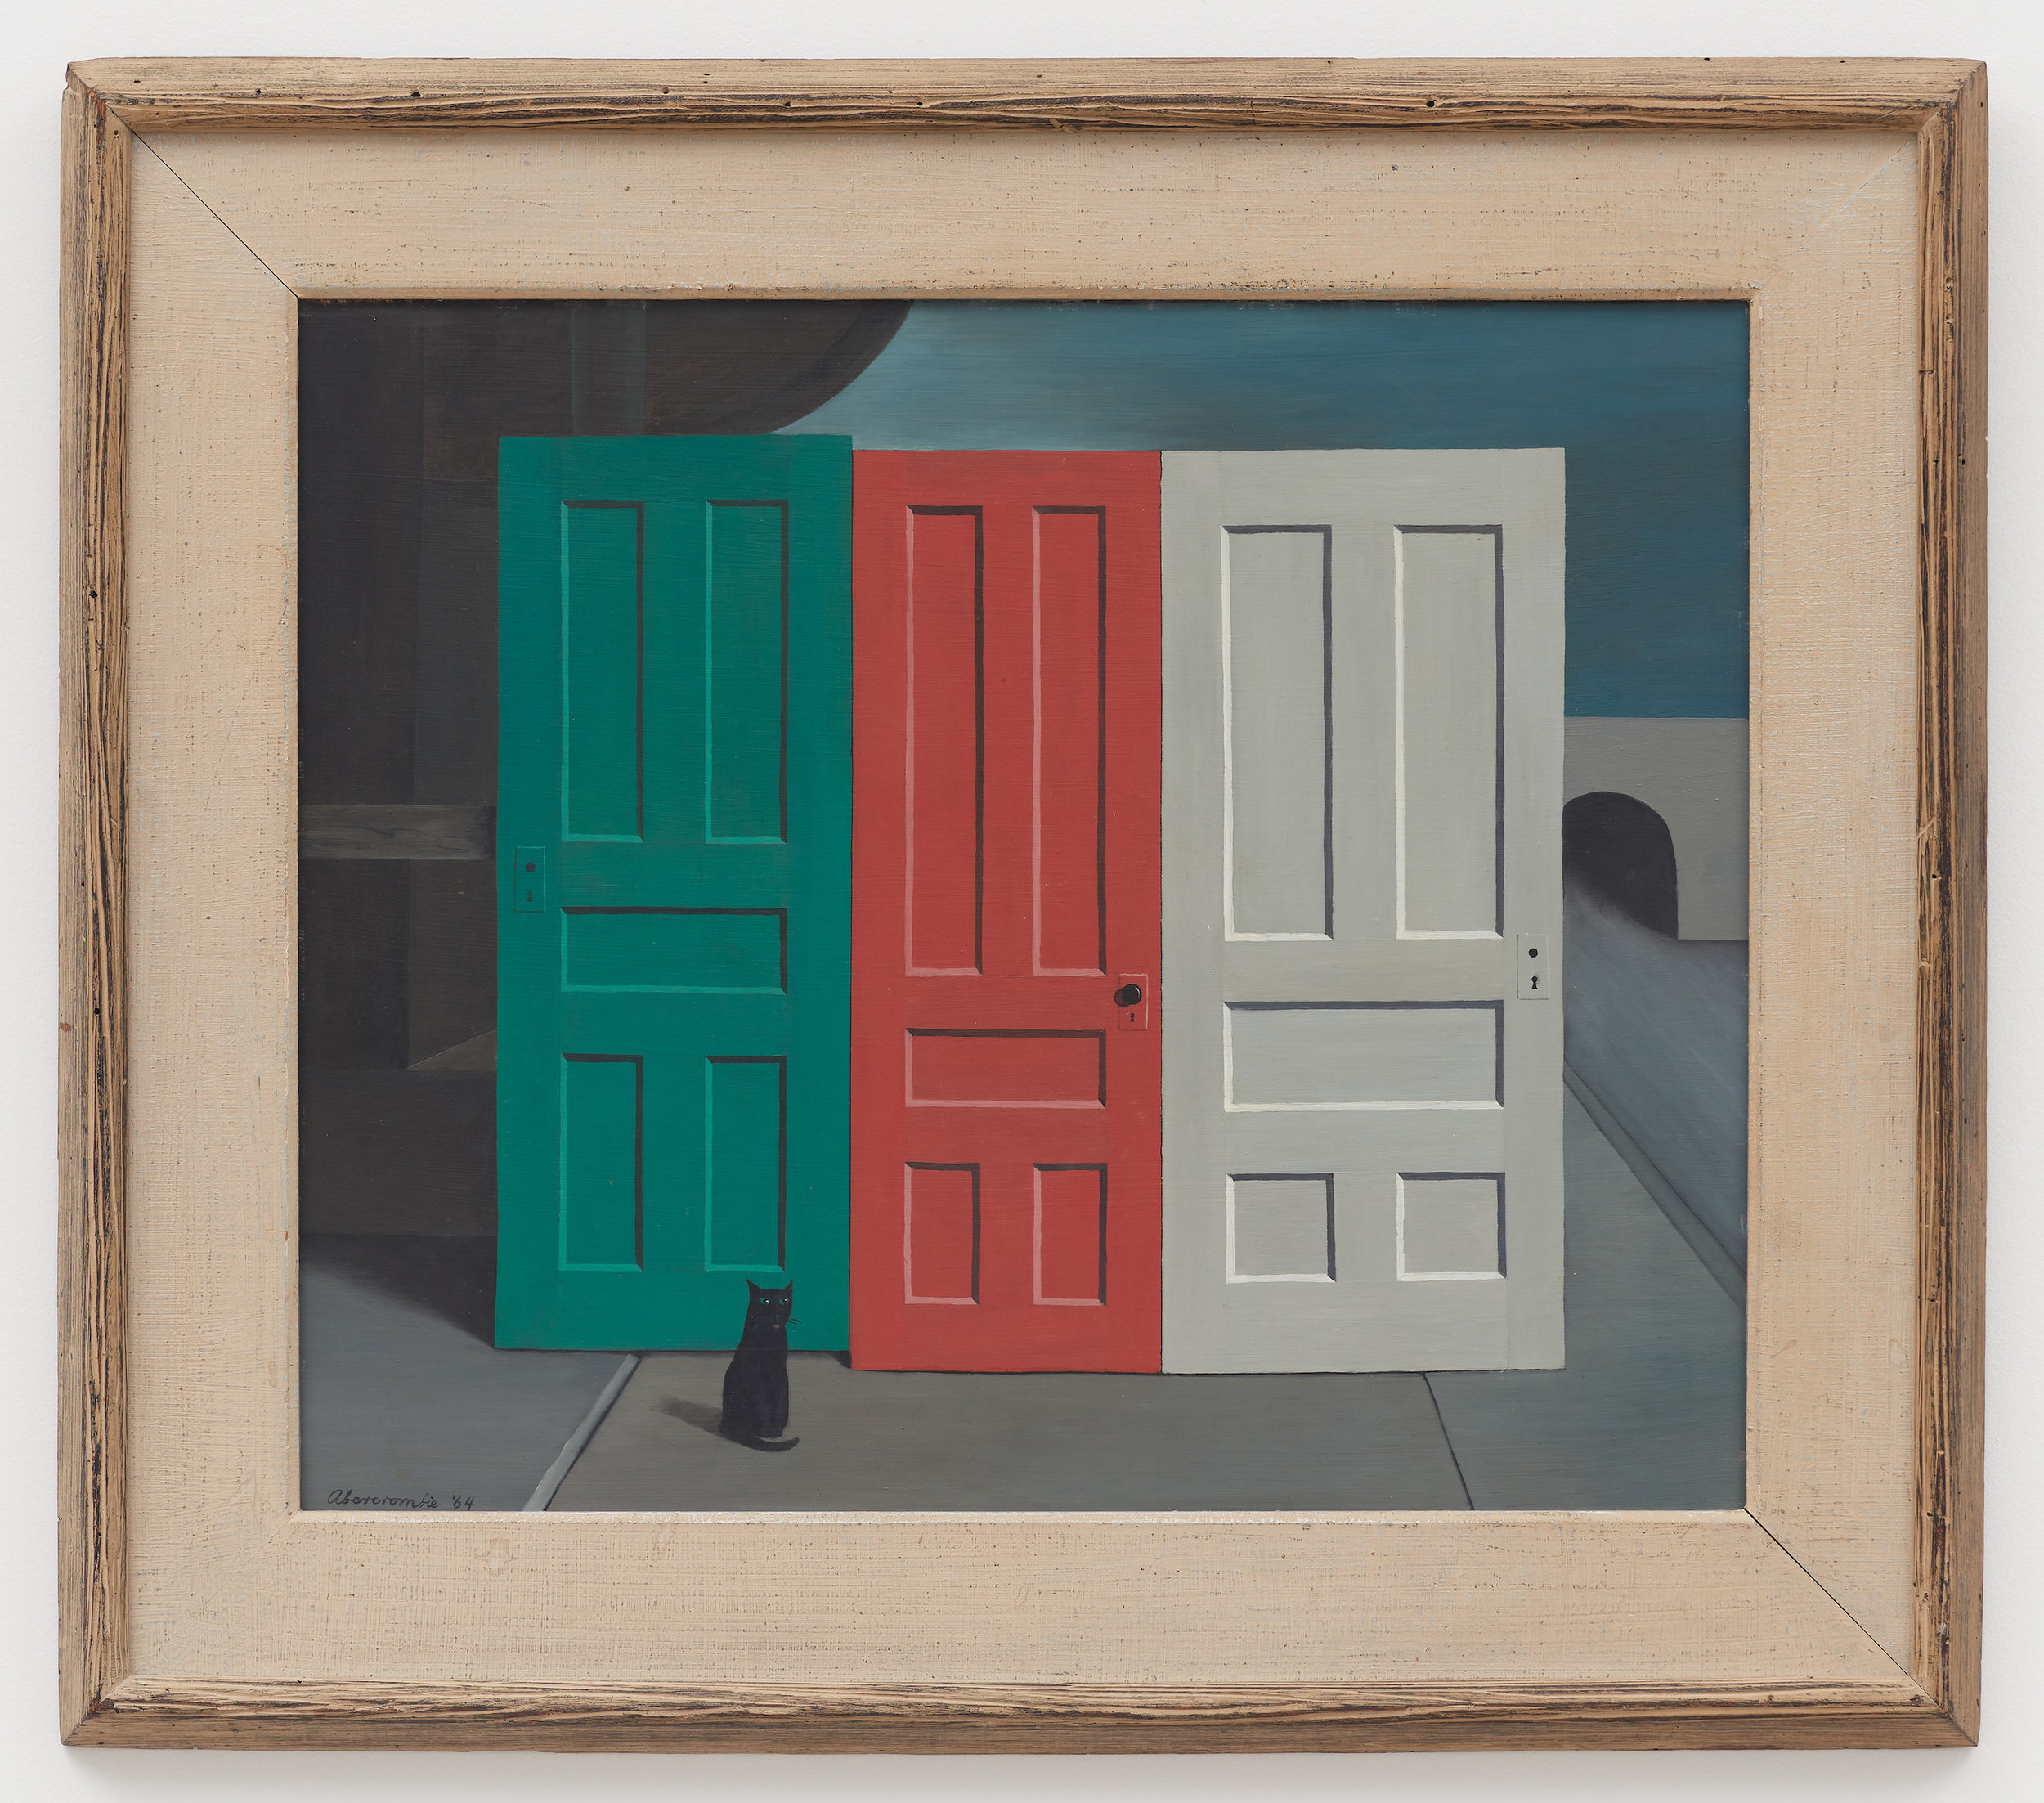 Demolition Doors,  1964, Oil on masonite, 20 × 24 1/2 inches (unframed); 27 1/4 × 31 1/4 (framed). Columbus Museum of Art, Ohio: Museum Purchase, Derby Fund, from the Philip J. and Suzanne Schiller Collection of American Social Commentary Art 1930–1970.